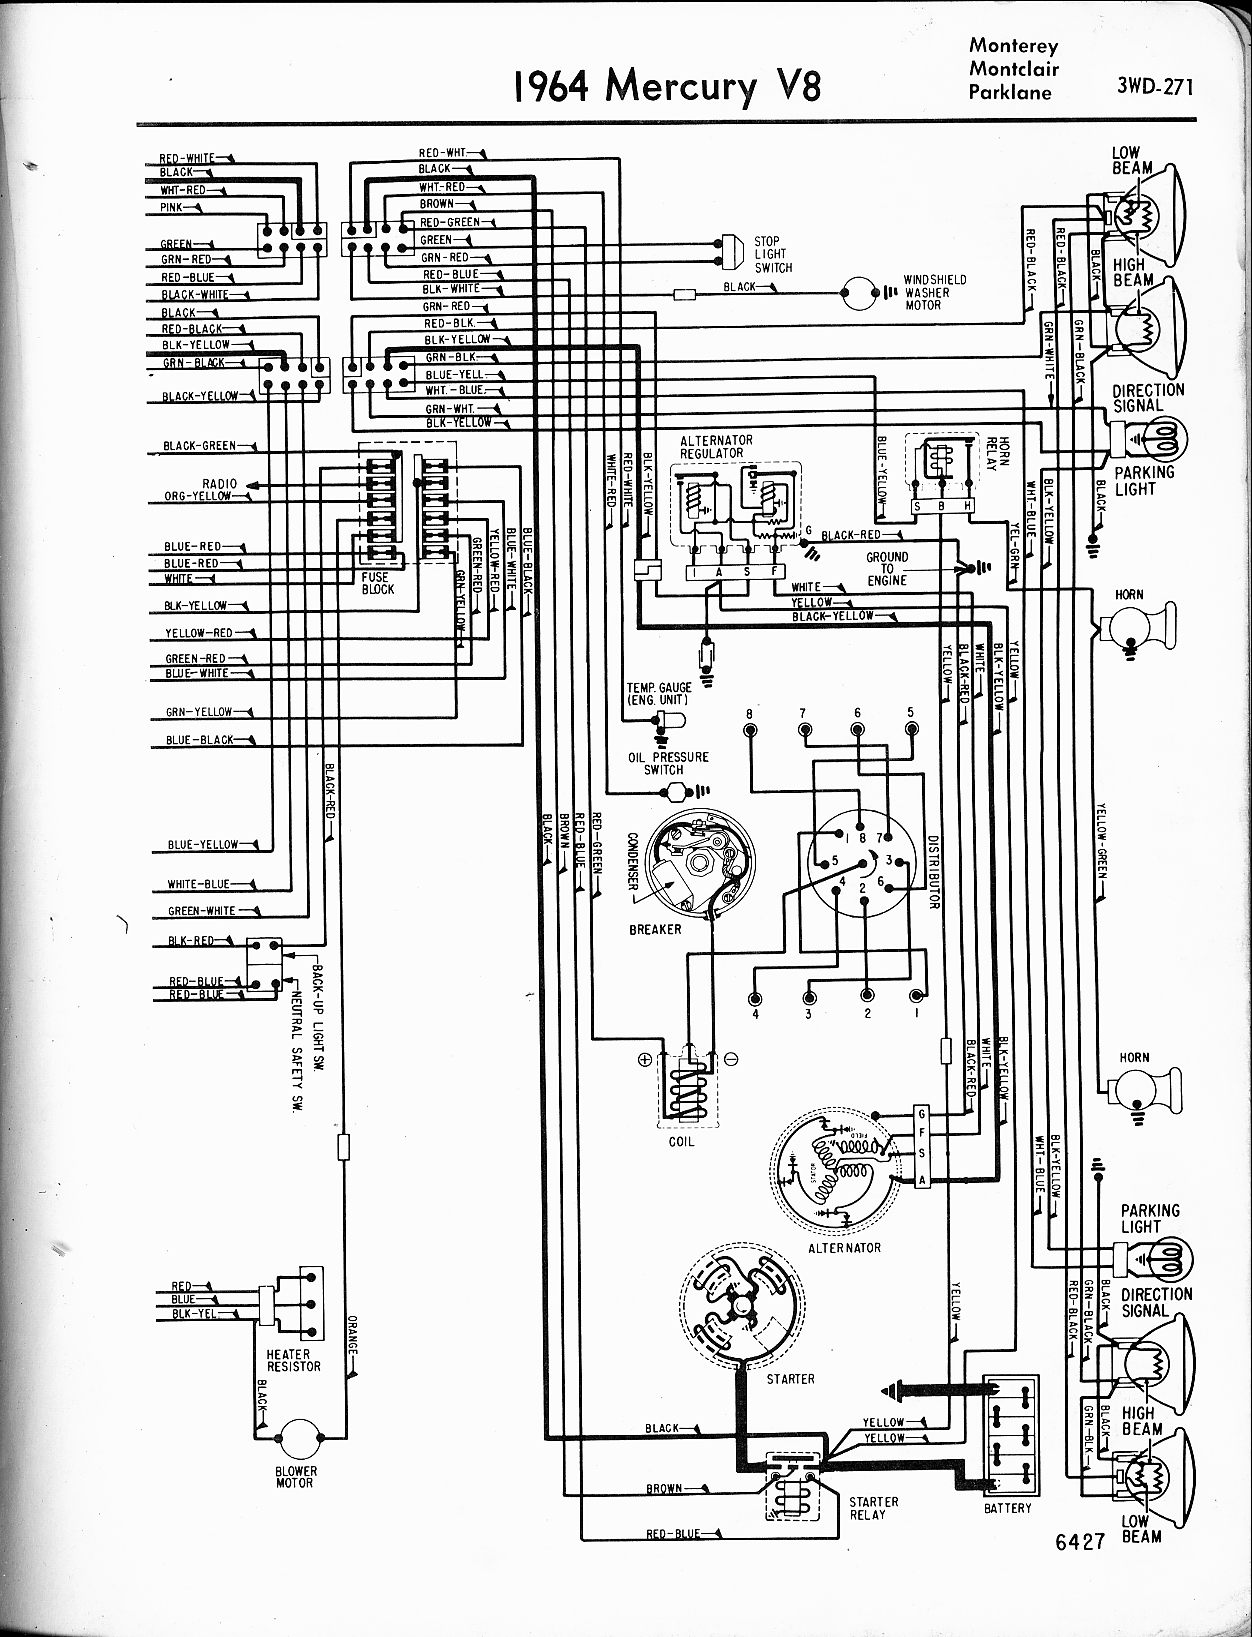 MWire5765 271 mercury wiring diagrams the old car manual project 1963 ford galaxie fuse box diagram at soozxer.org